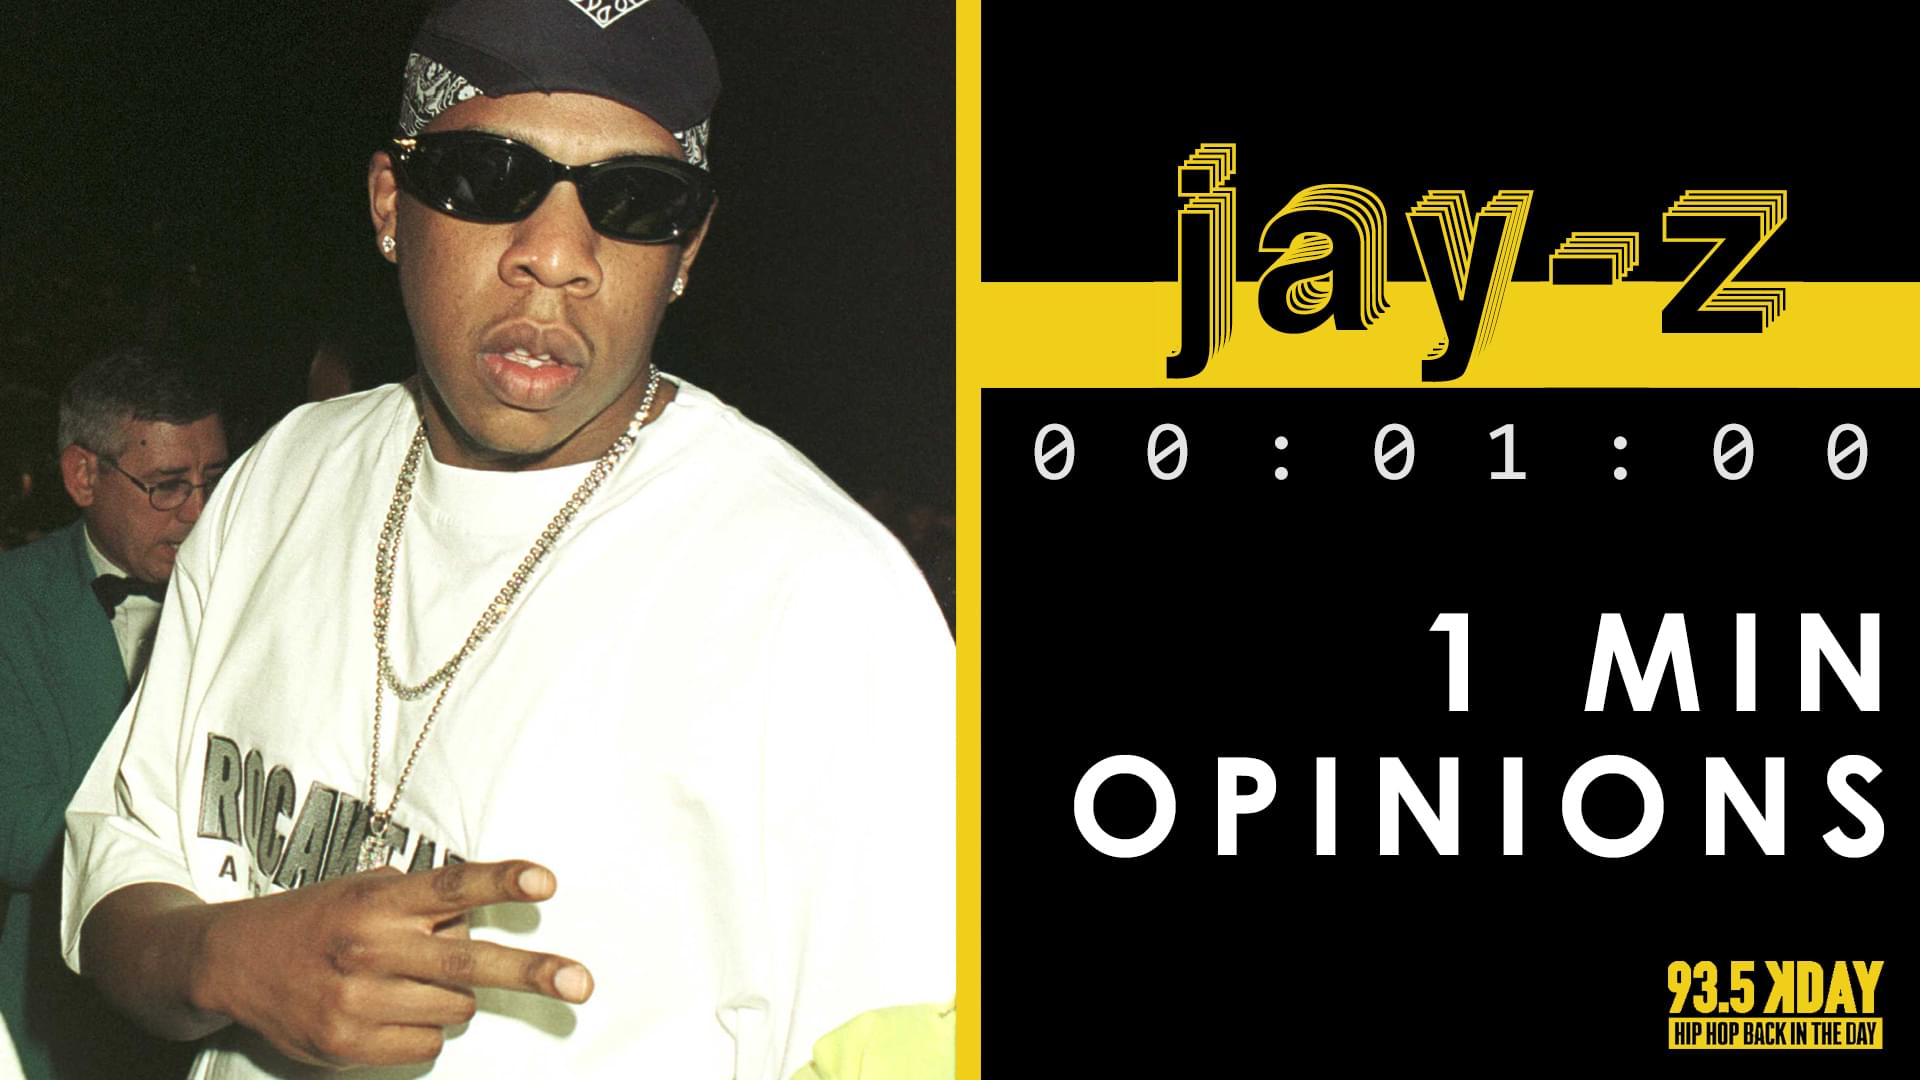 KDAY Hosts Share Their '1 Minute Opinions' On Jay-Z